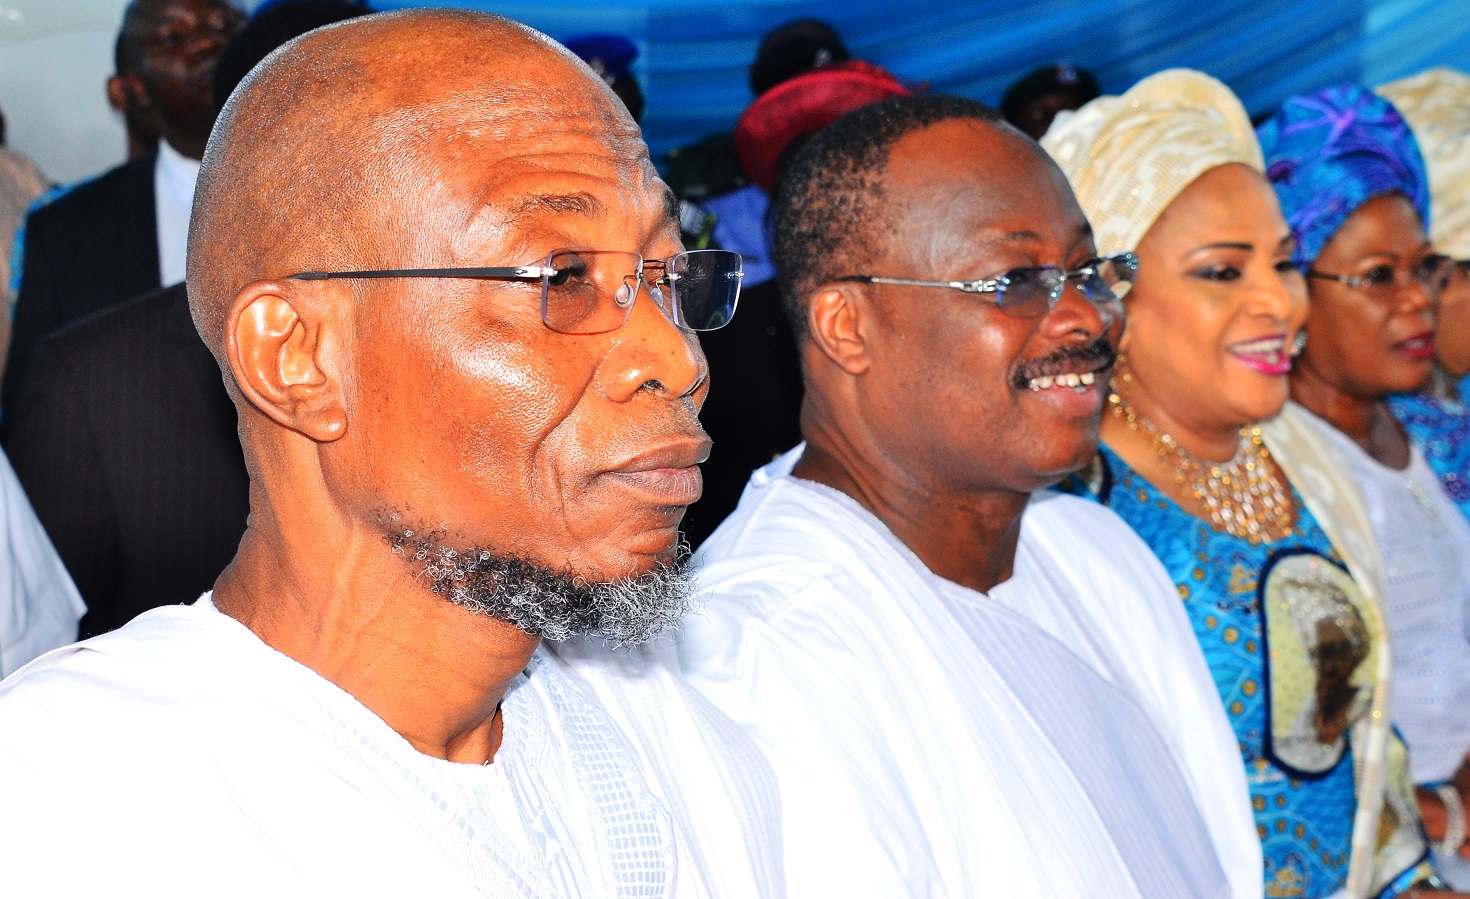 From left- Governor State of Osun, Ogbeni Rauf Aregbesola; Oyo State counterpart, Senator Abiola Ajimobi, his wife Florence and Deputy Governor, State of Osun, Mrs. Titi Laoye-Tomori, during the Funeral Service of Late Chief (Mrs.) Hannah Idowu Dideolu Awolowo, at Our Saviour's Anglican Church, Ikenne, Ogun State, on Wednesday 25/11/2015.